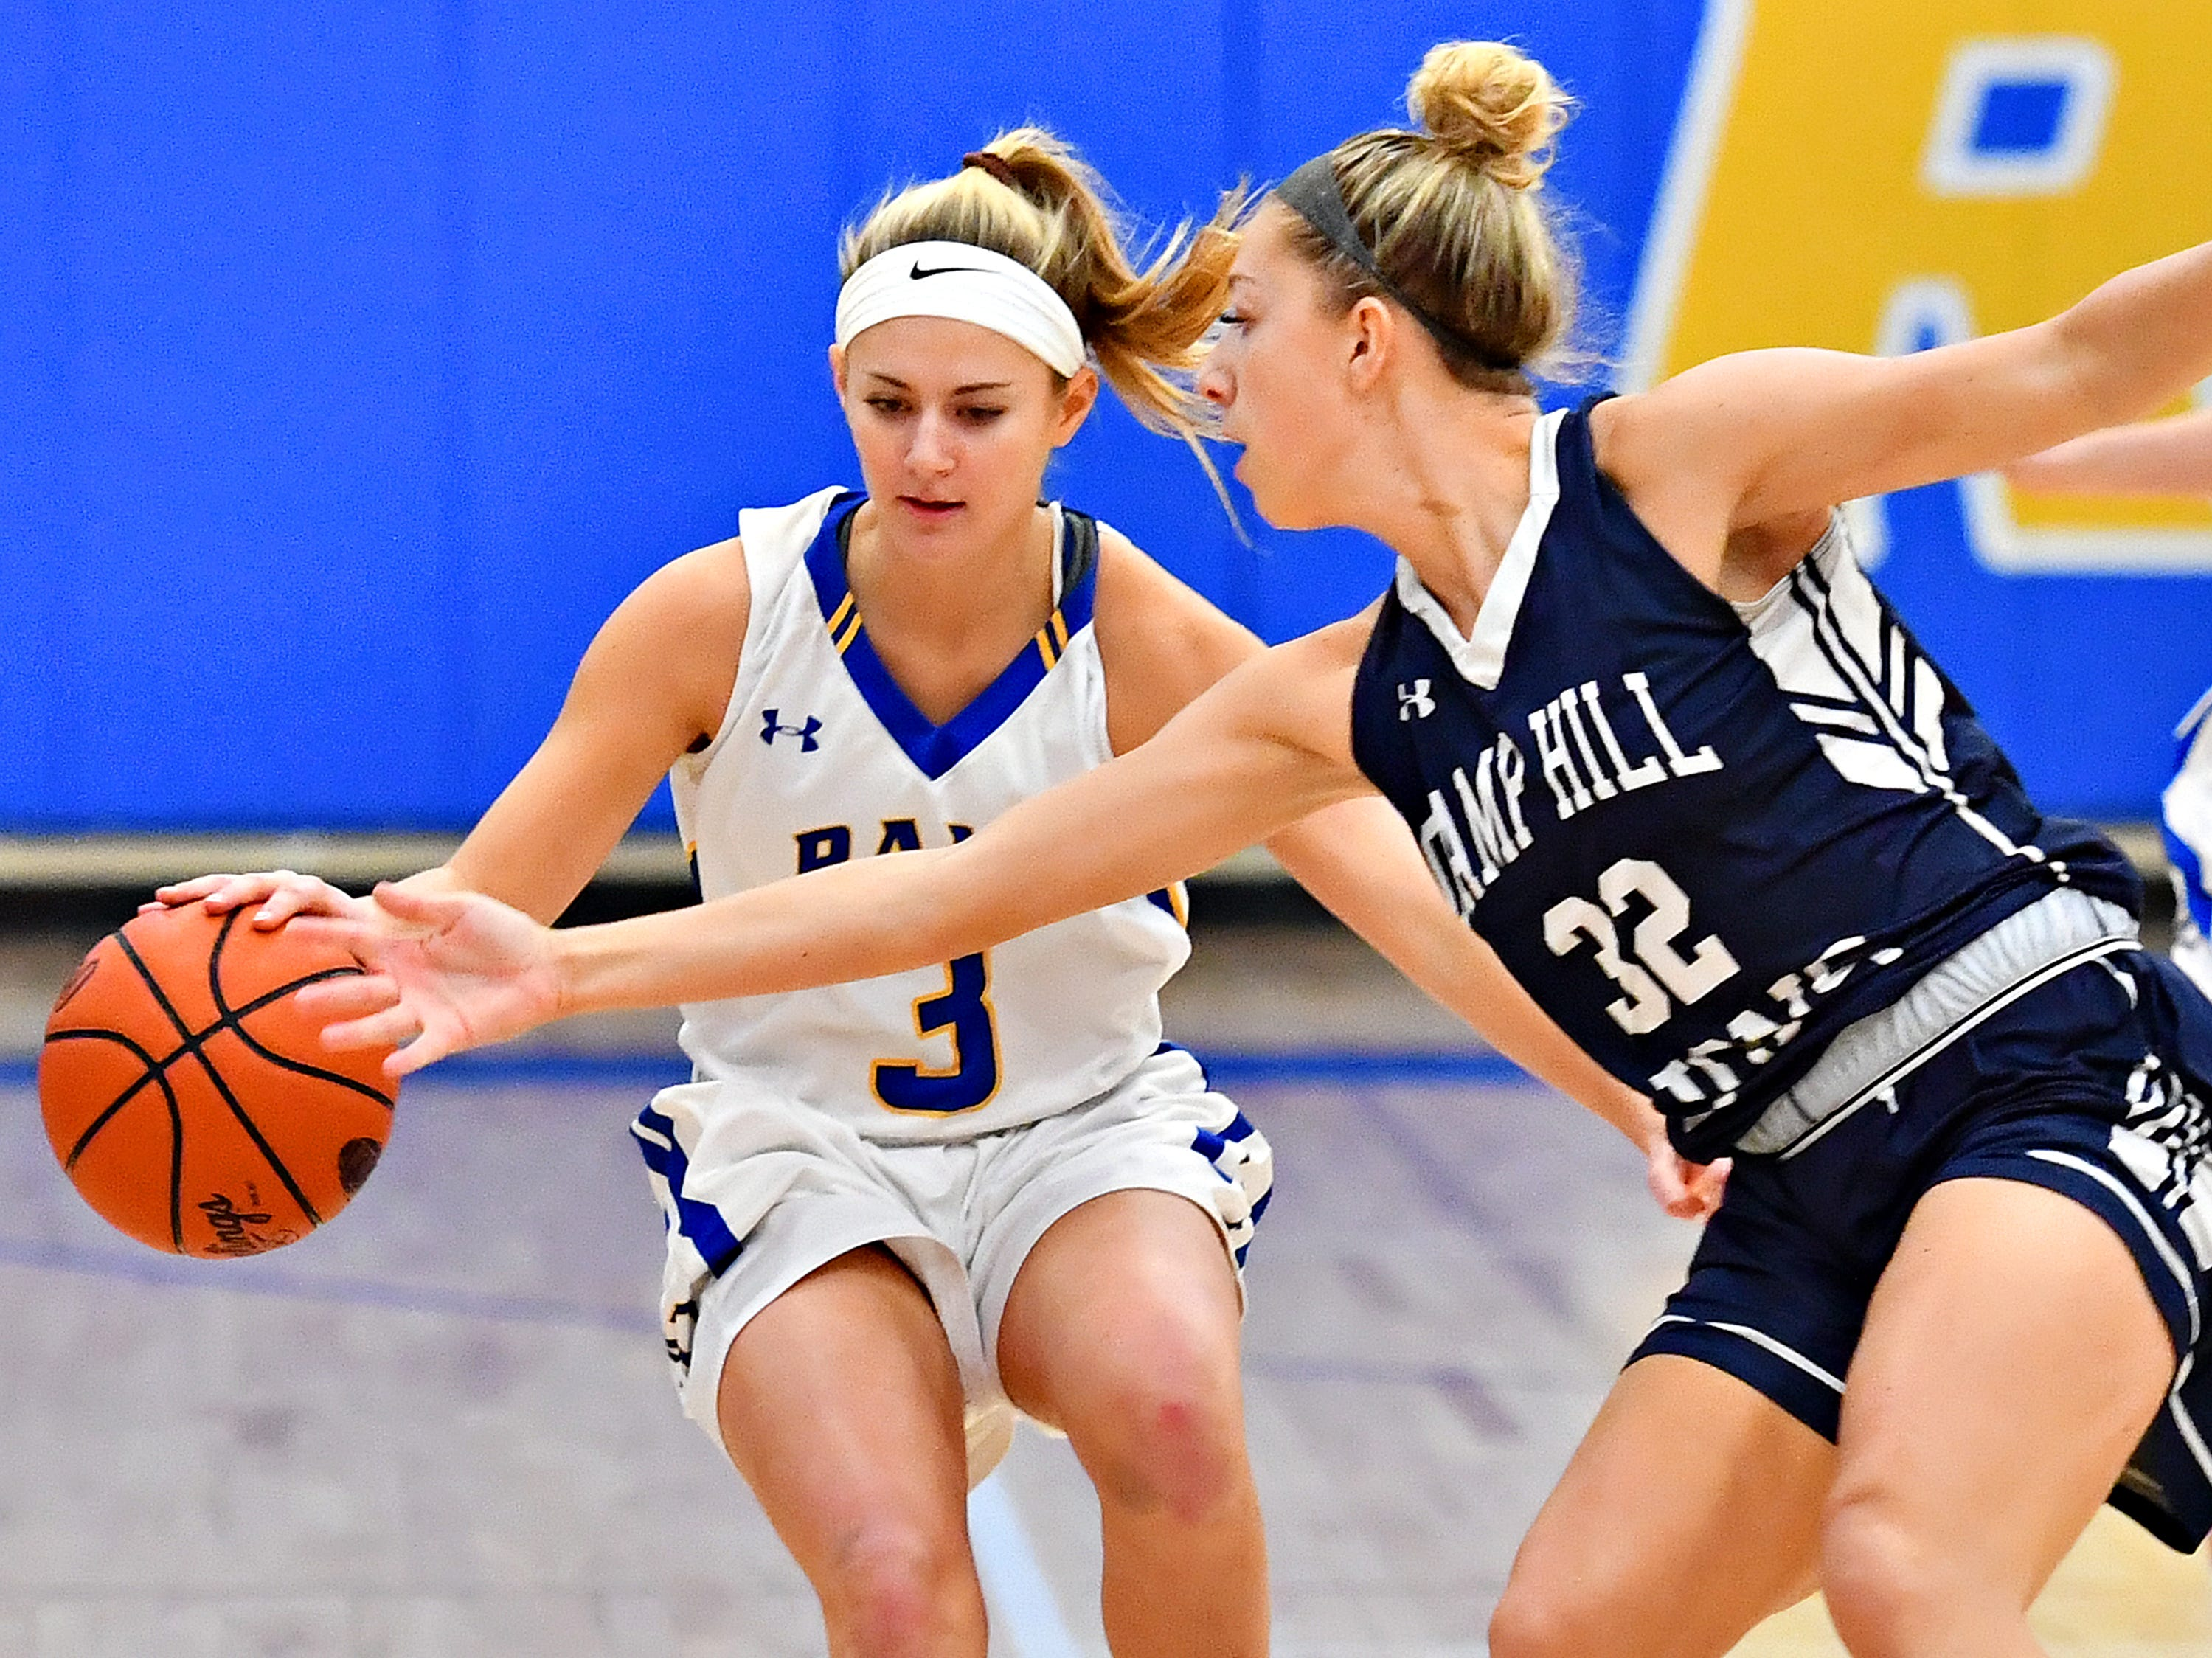 Camp Hill's Sheridan Reid, right, works to hit the ball away from Kennard-Dale's Megan Halczuk during girls' basketball action at Kennard-Dale High School in Fawn Grove, Wednesday, Dec. 12, 2018. Kennard-Dale would win the game 47-28. Dawn J. Sagert photo